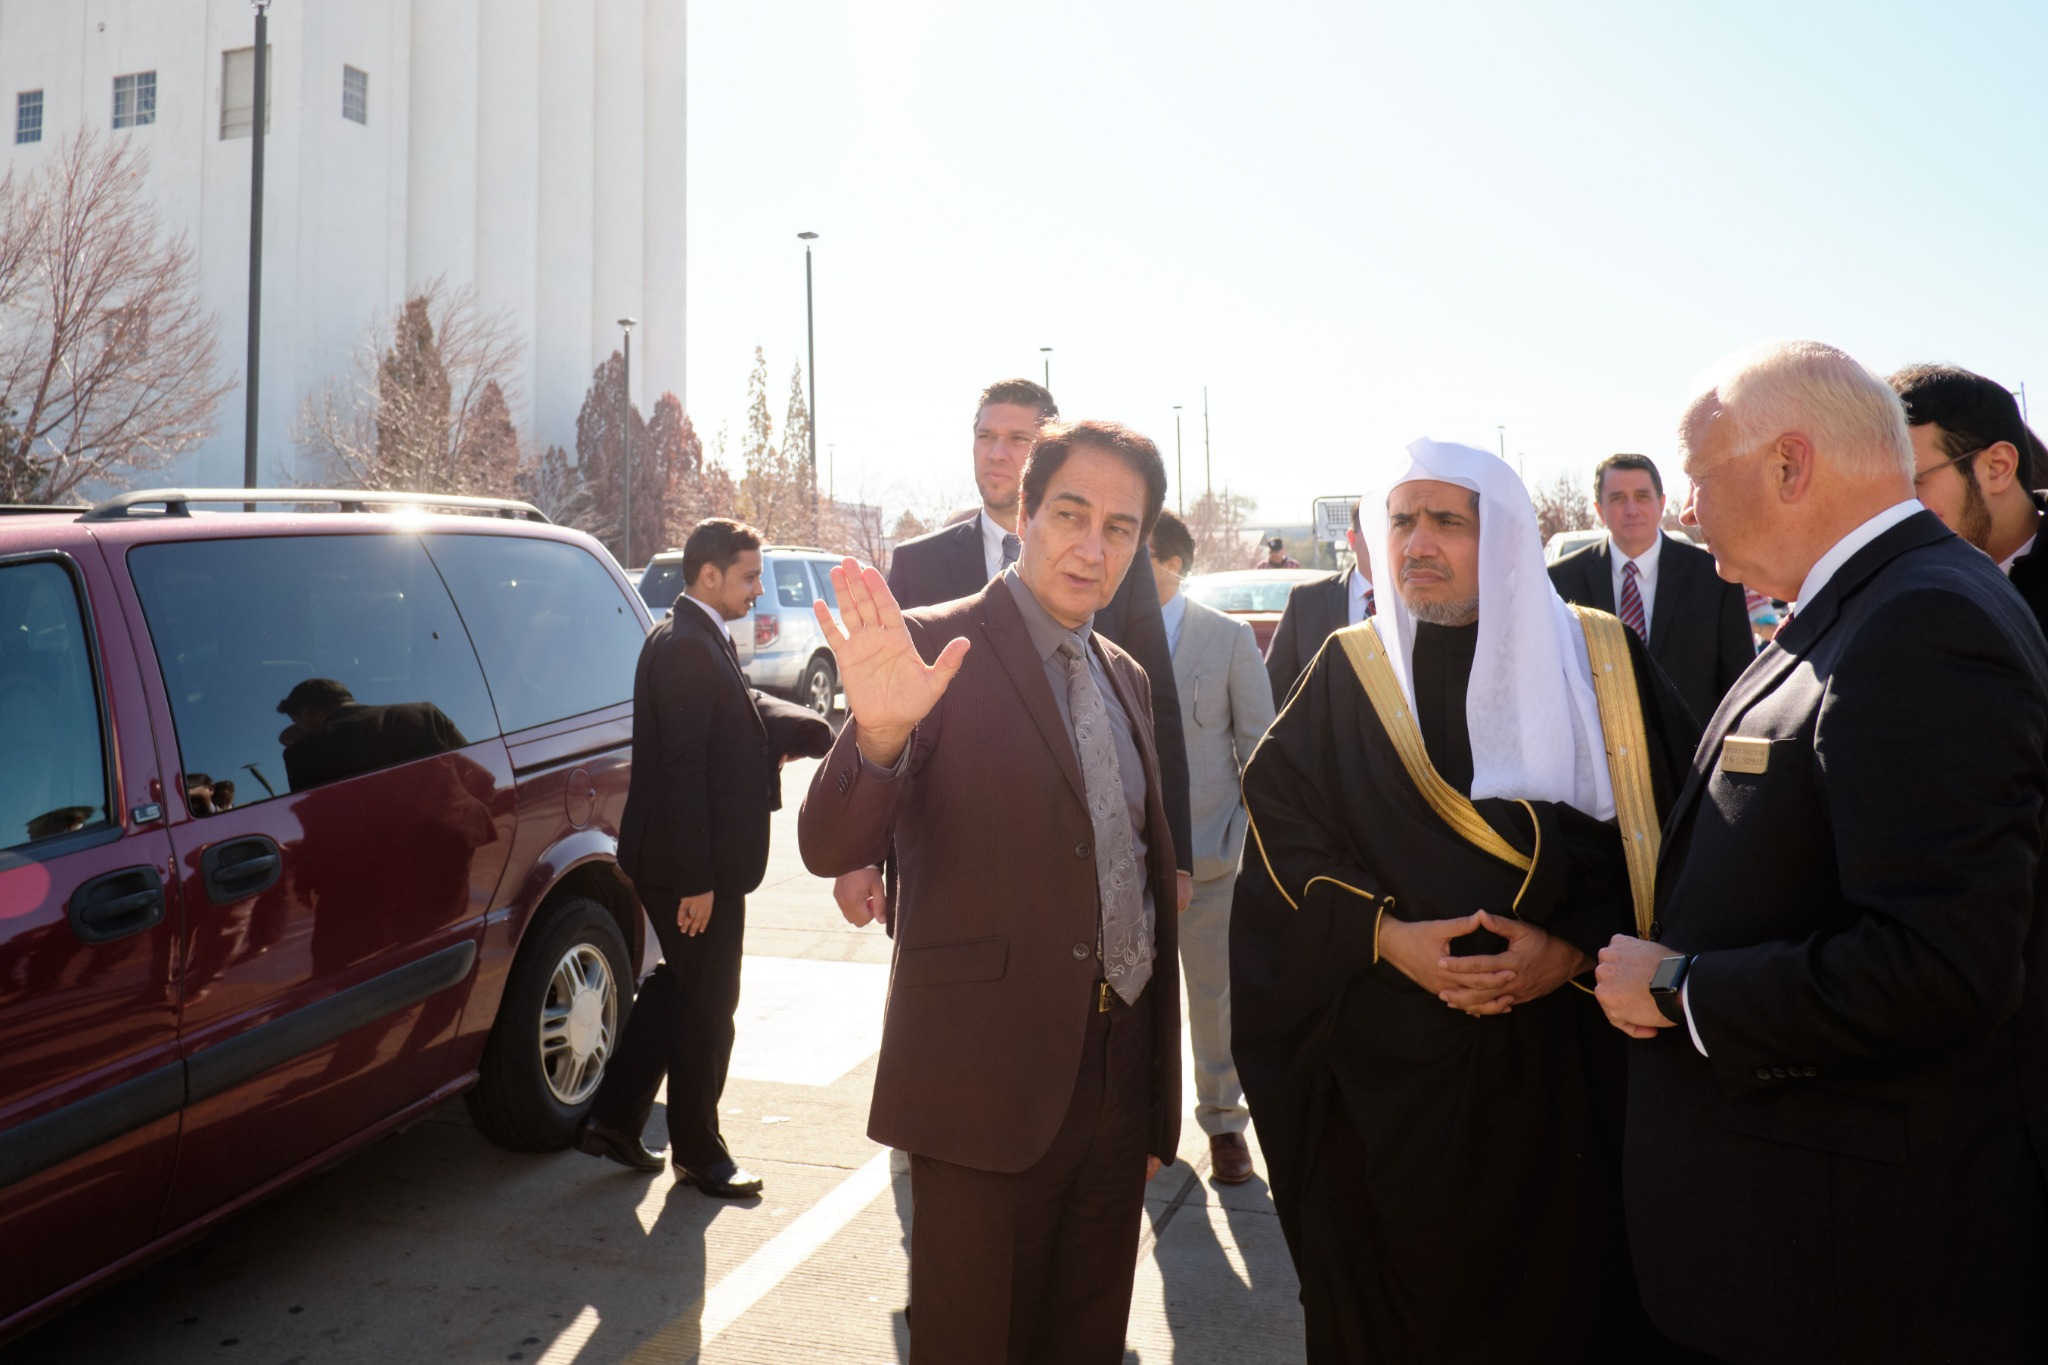 His Excellency Dr. Mohammad Al-Issa, secretary-general of the Muslim World League, tours Welfare Square in Salt Lake City on Nov. 5, 2019.